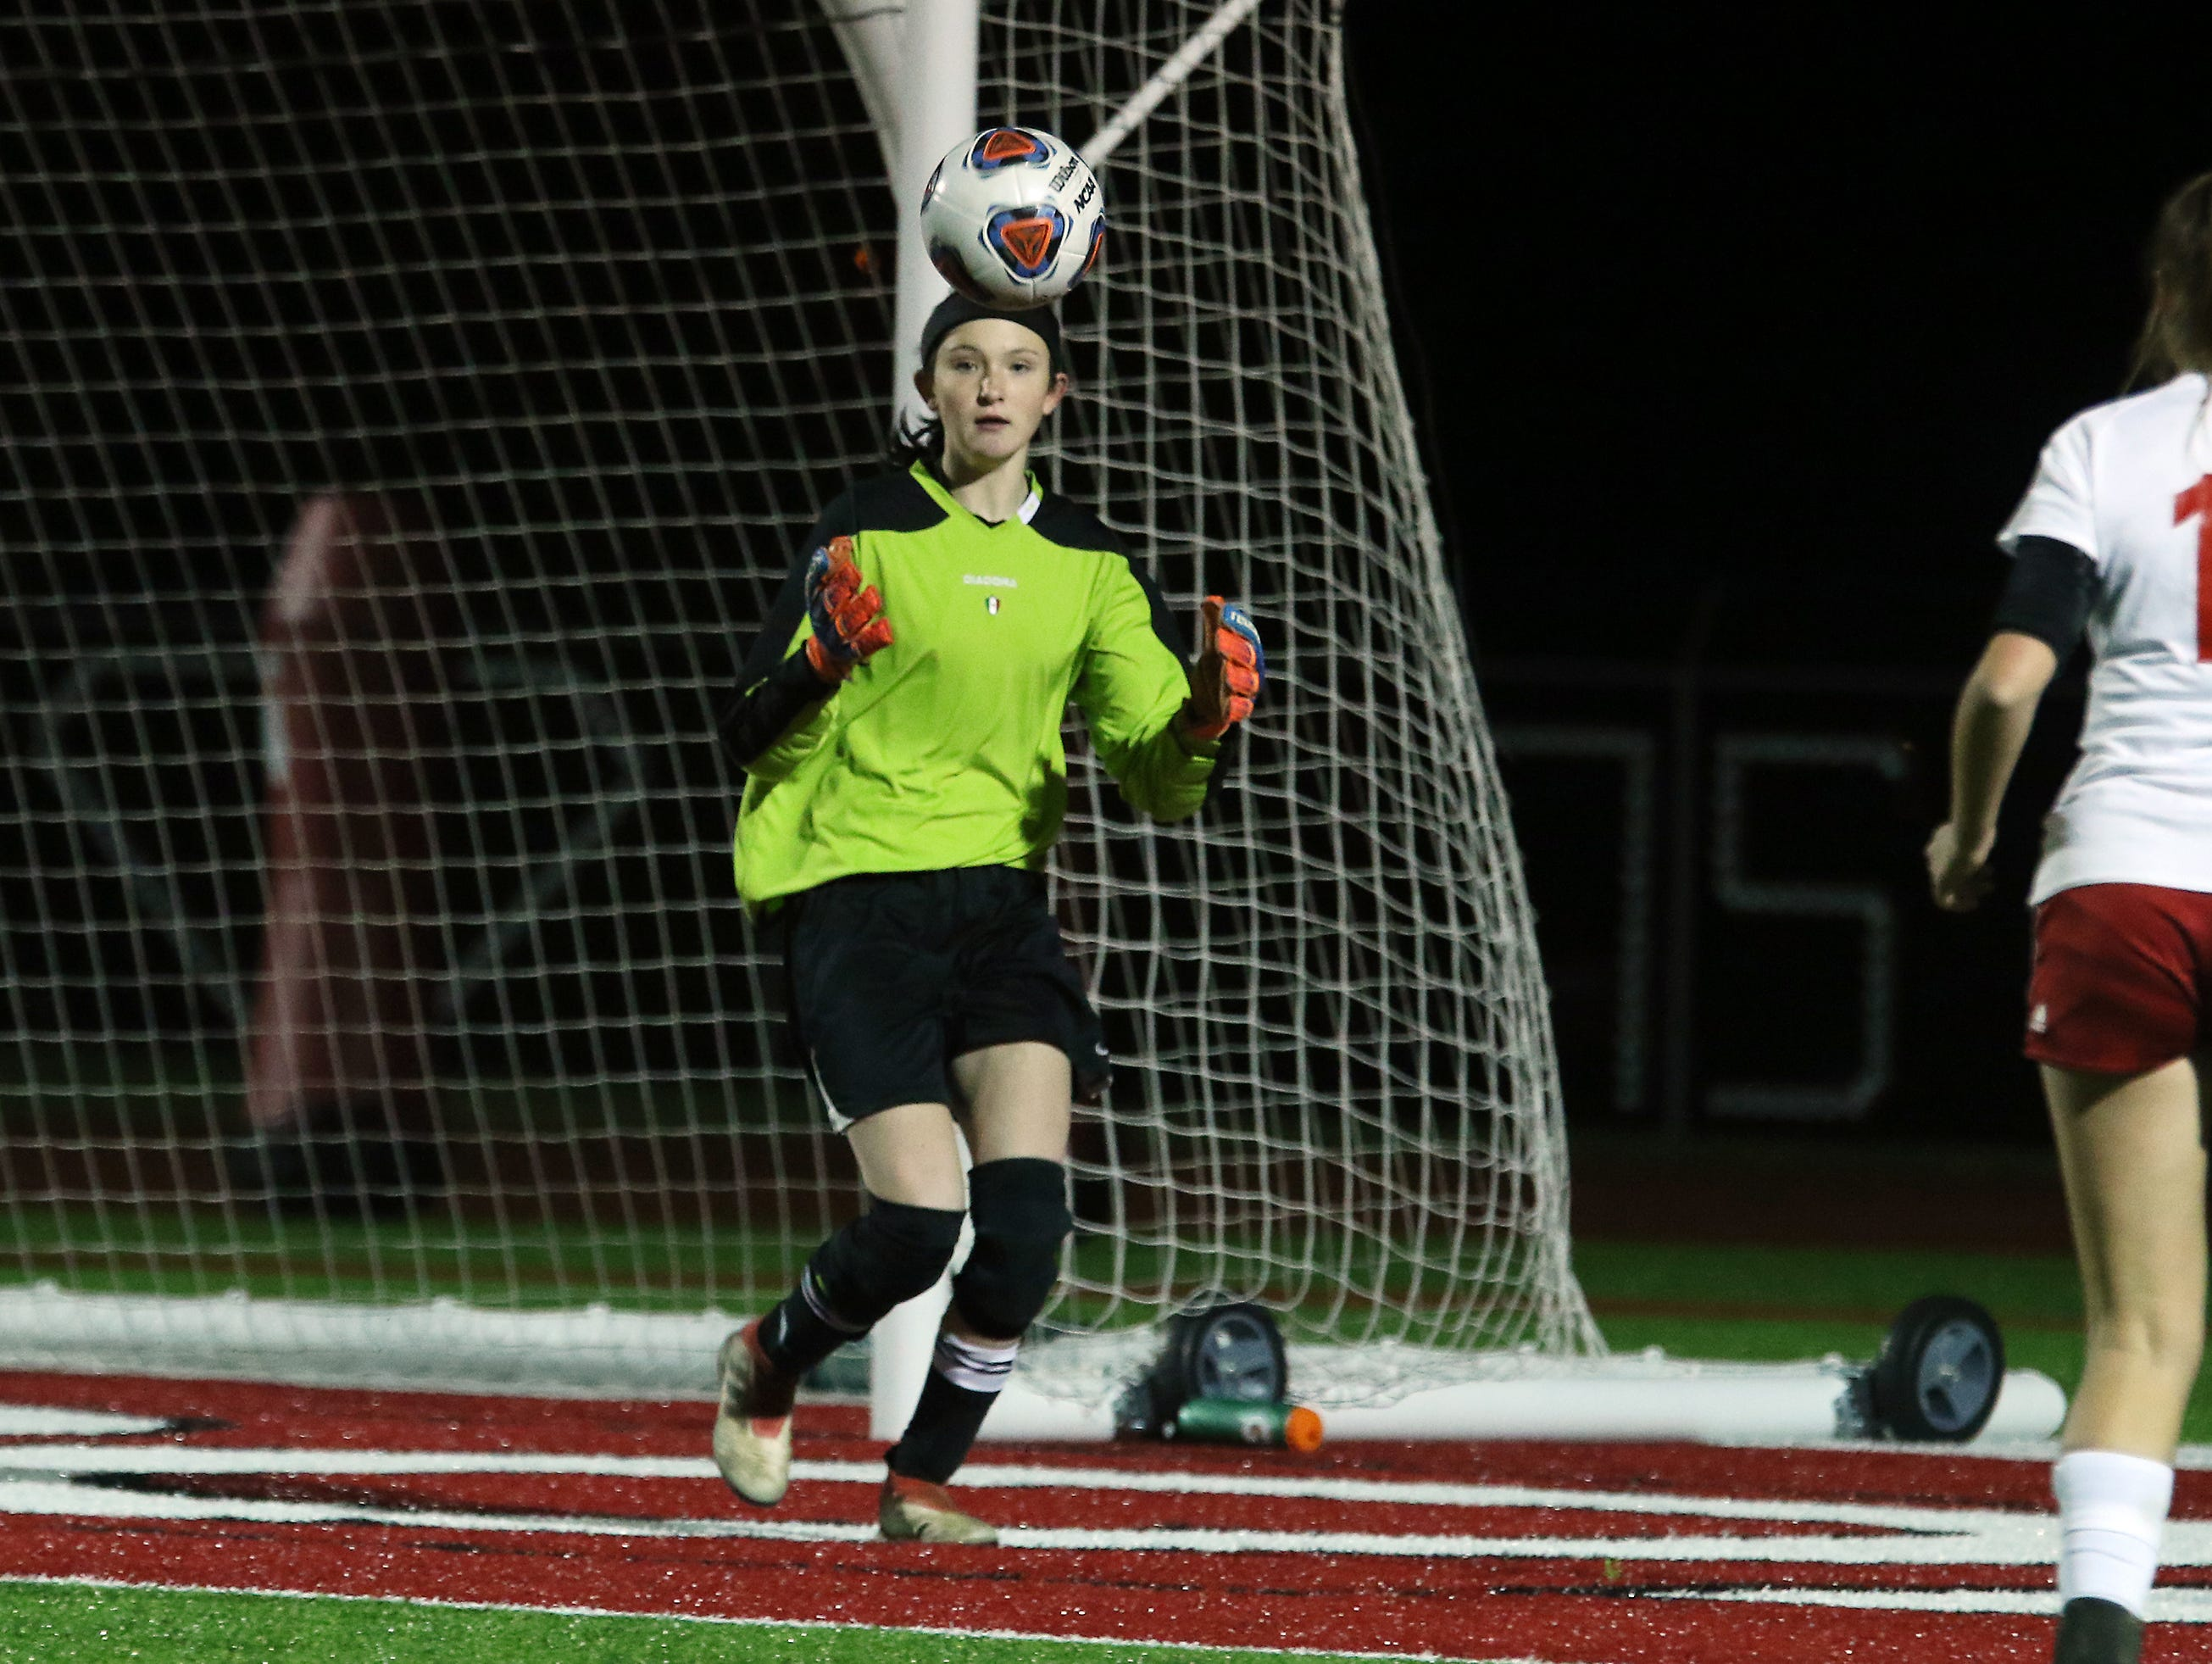 Rosecrans' Makaela McLoughlin makes a save against CCD in the Division III state semifinals at London High School on Tuesday.